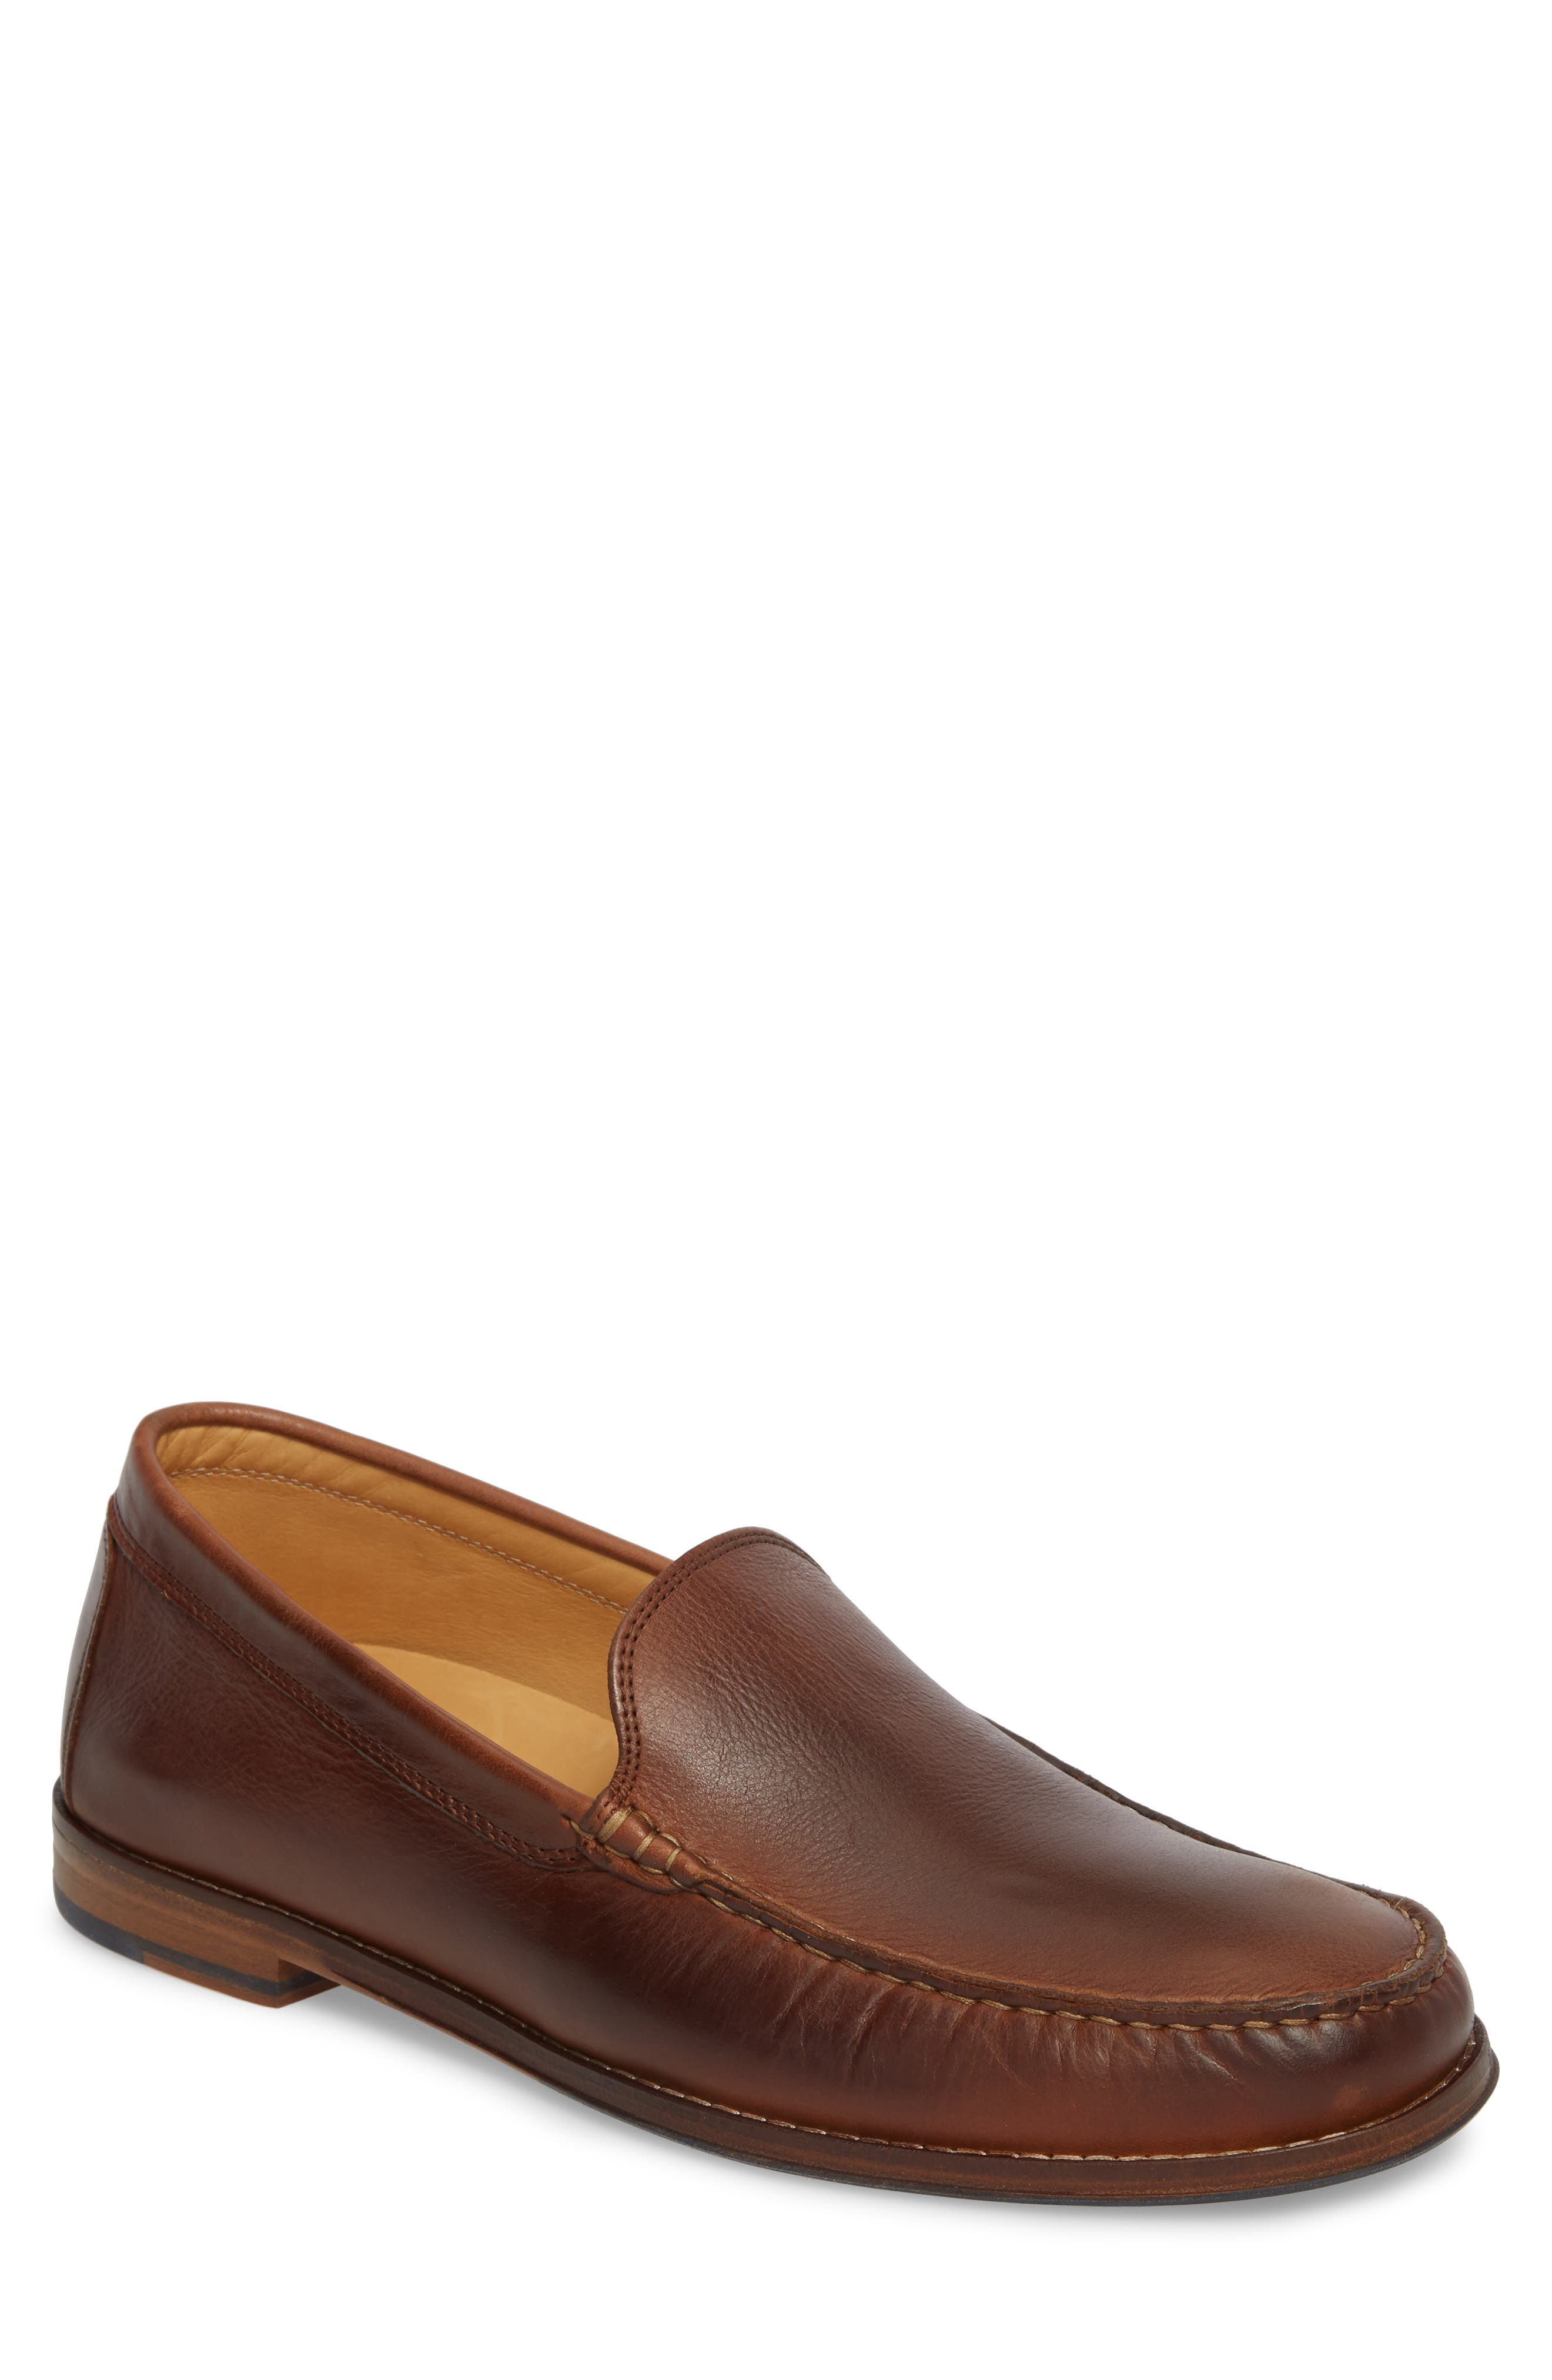 Caldwells Loafer,                             Main thumbnail 1, color,                             LIGHT BROWN DISTRESSED LEATHER